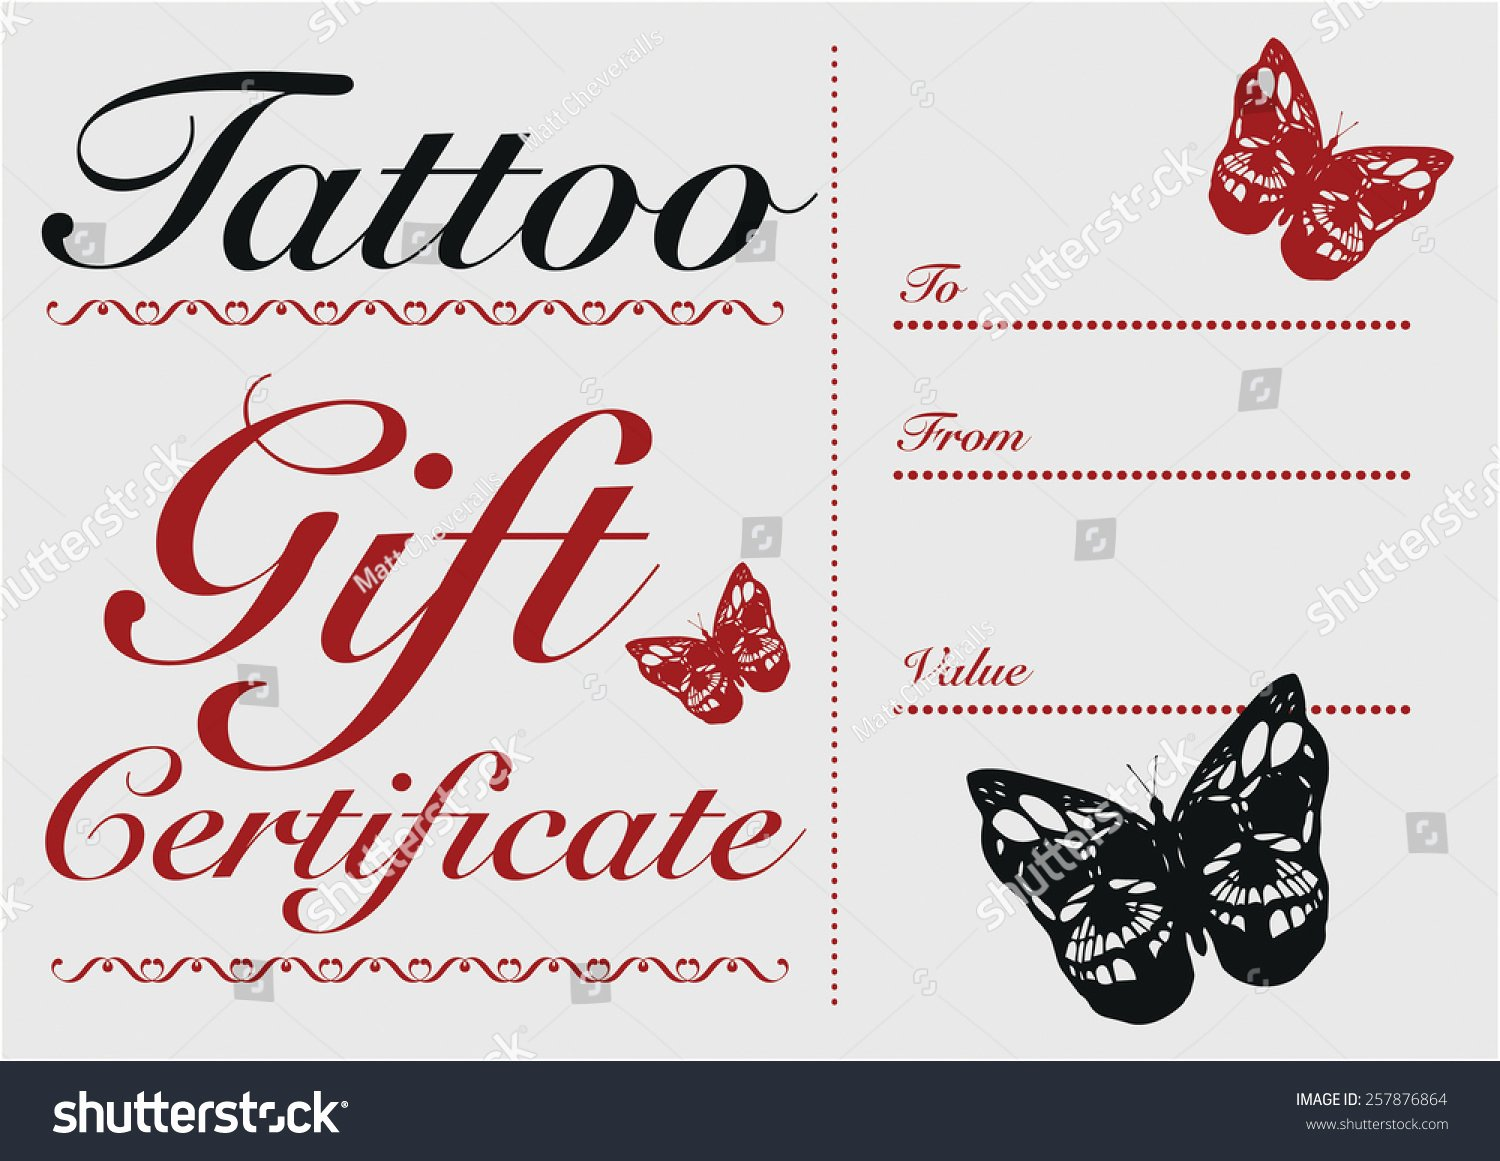 Tattoo Gift Certificate Template Free Best Of butterfly Skull Tattoo Gift Card and Gift Certificate